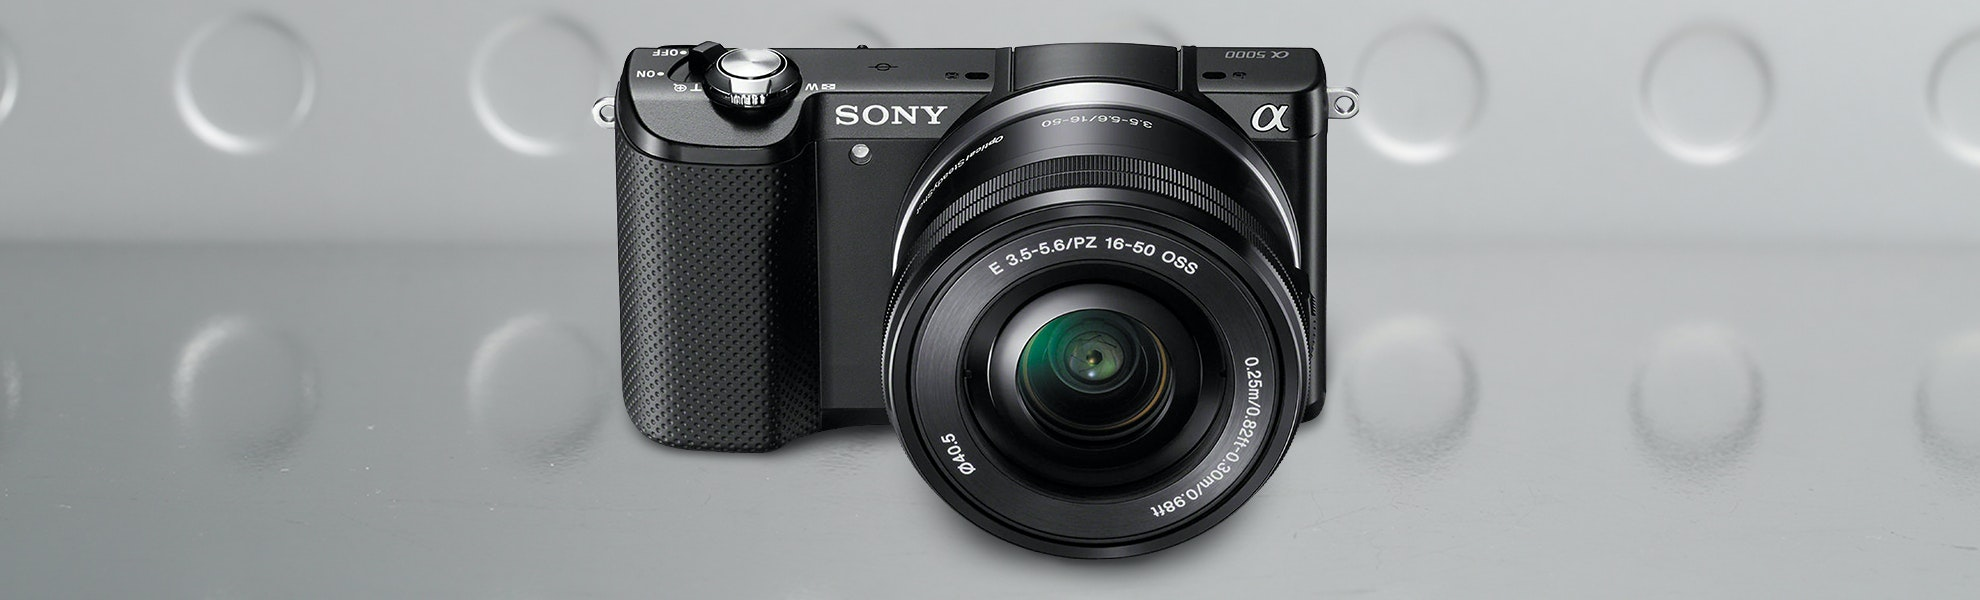 Sony ILCE-A5000 Mirrorless Camera With 16-50mm Lens